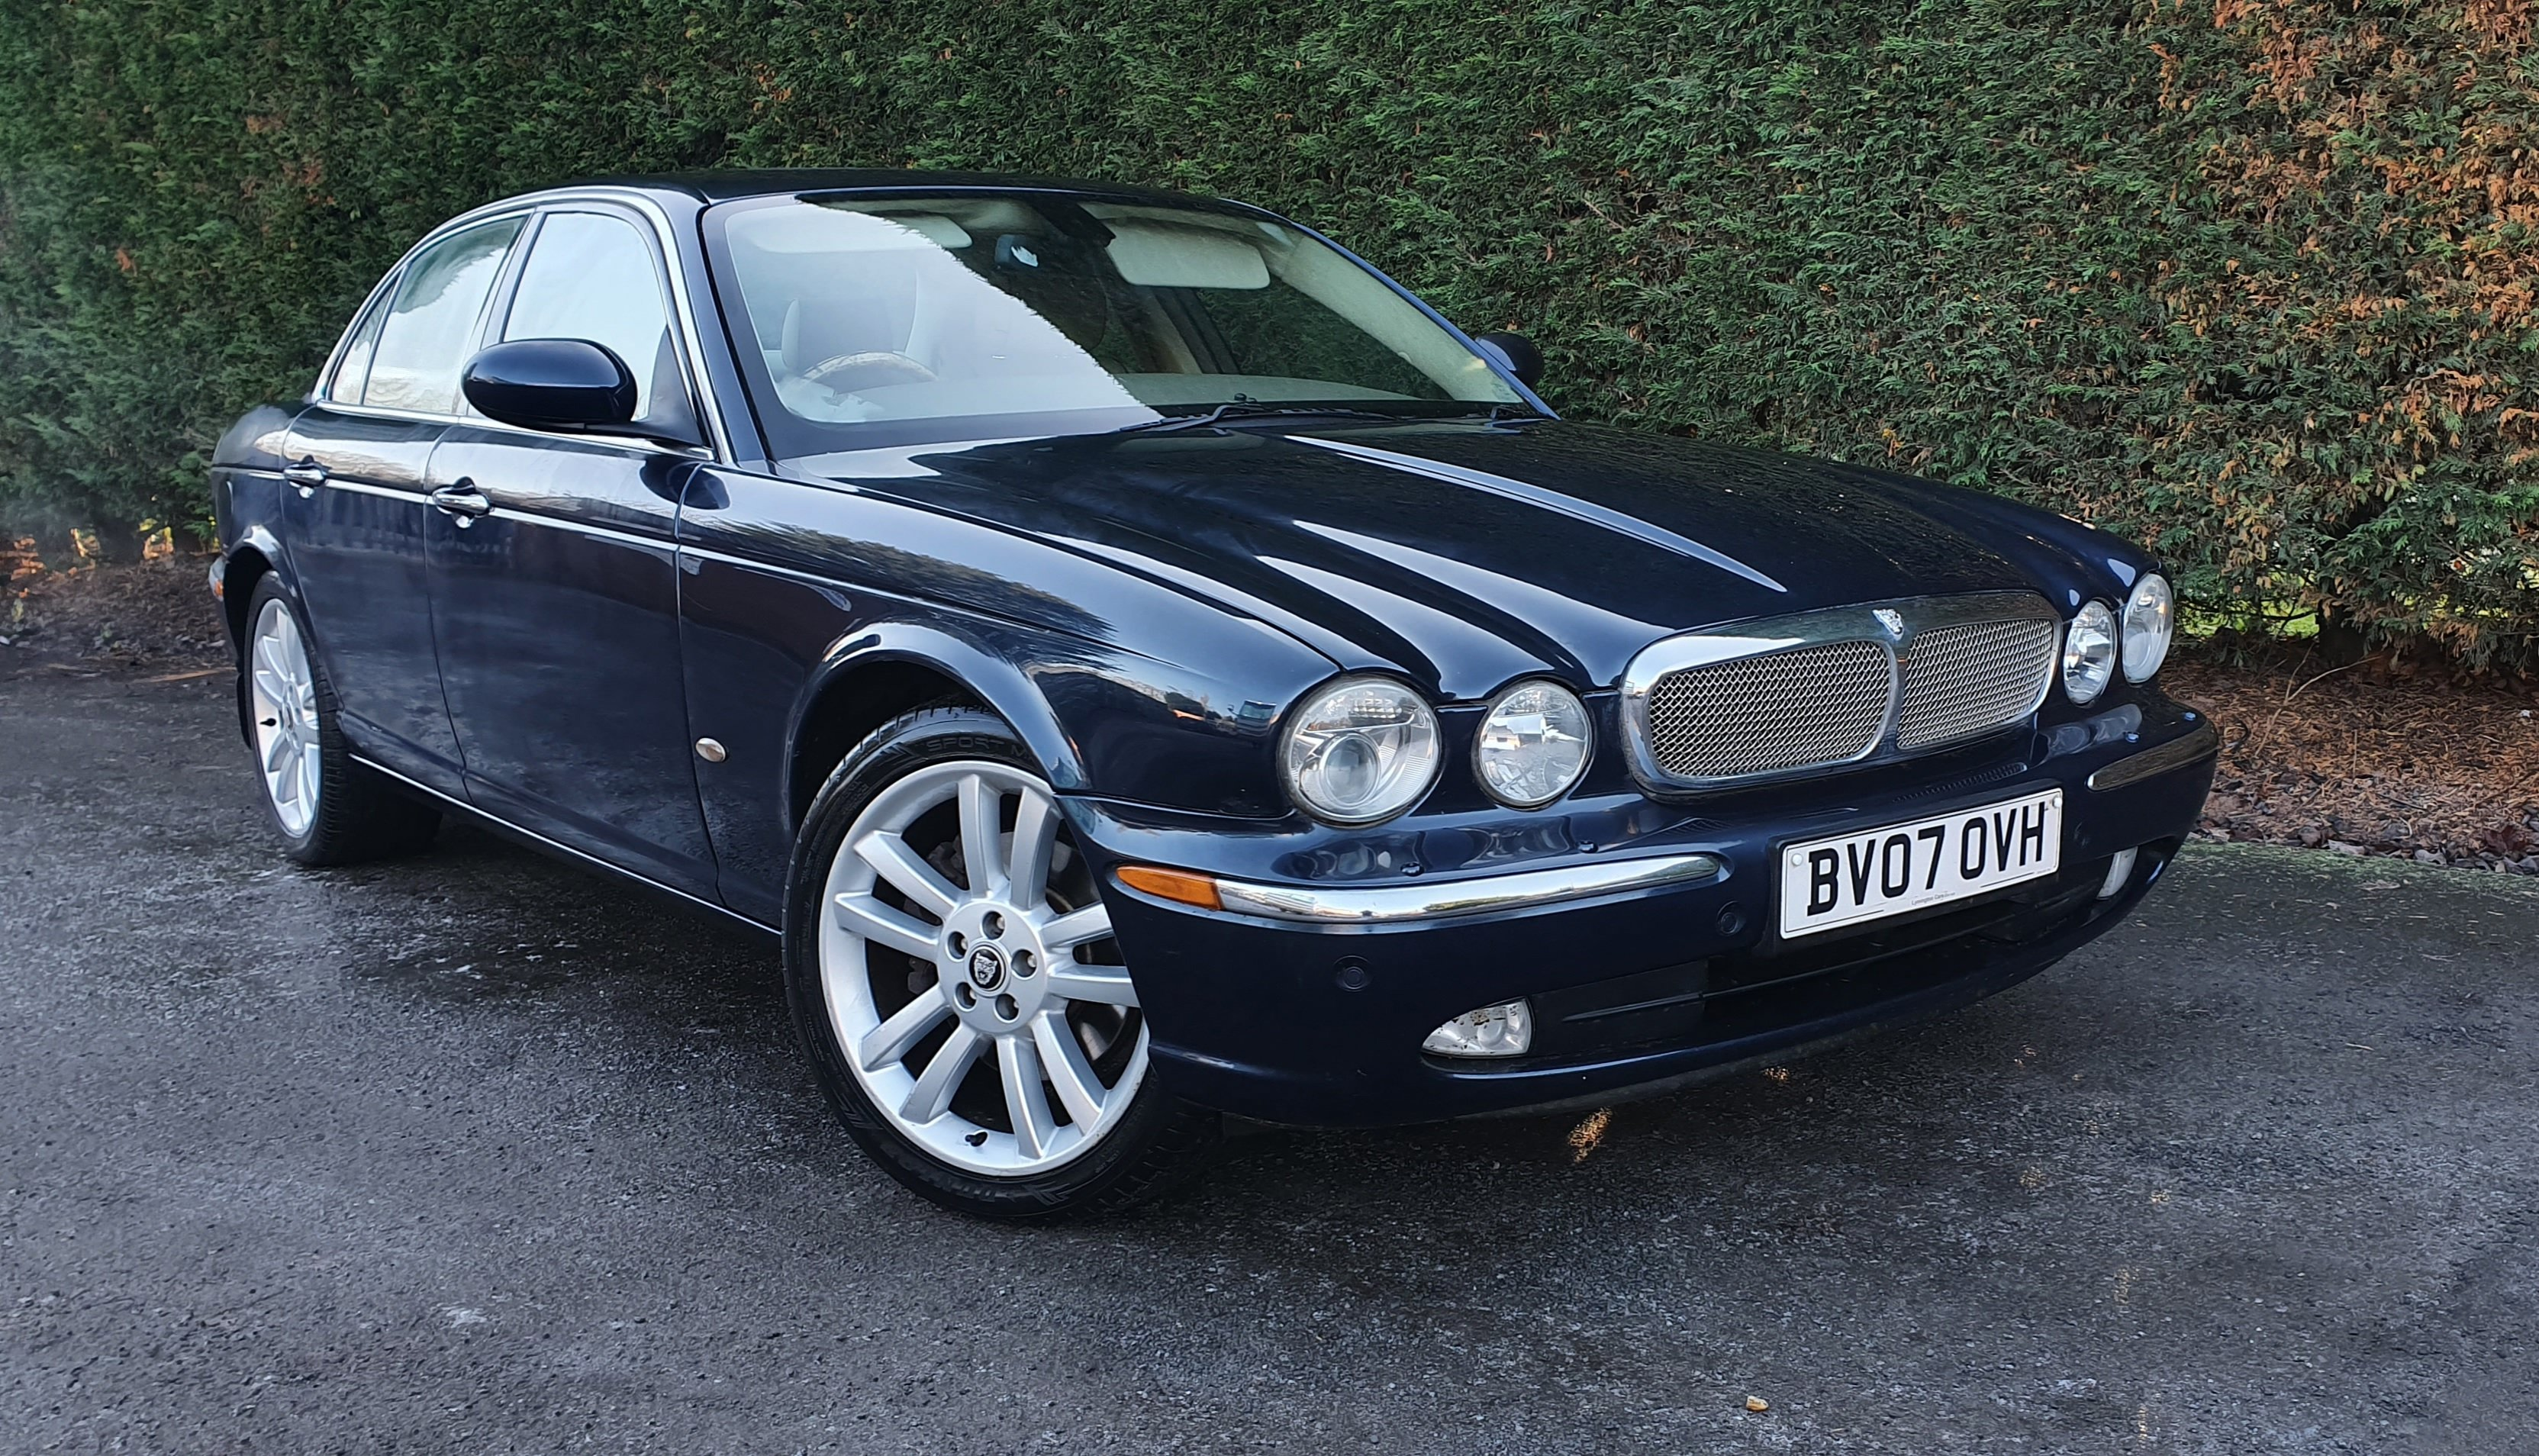 2007 X356 3.0 V6 XJ SOVEREIGN, FULL M/D HISTORY, UK CAR For Sale (picture 3 of 3)